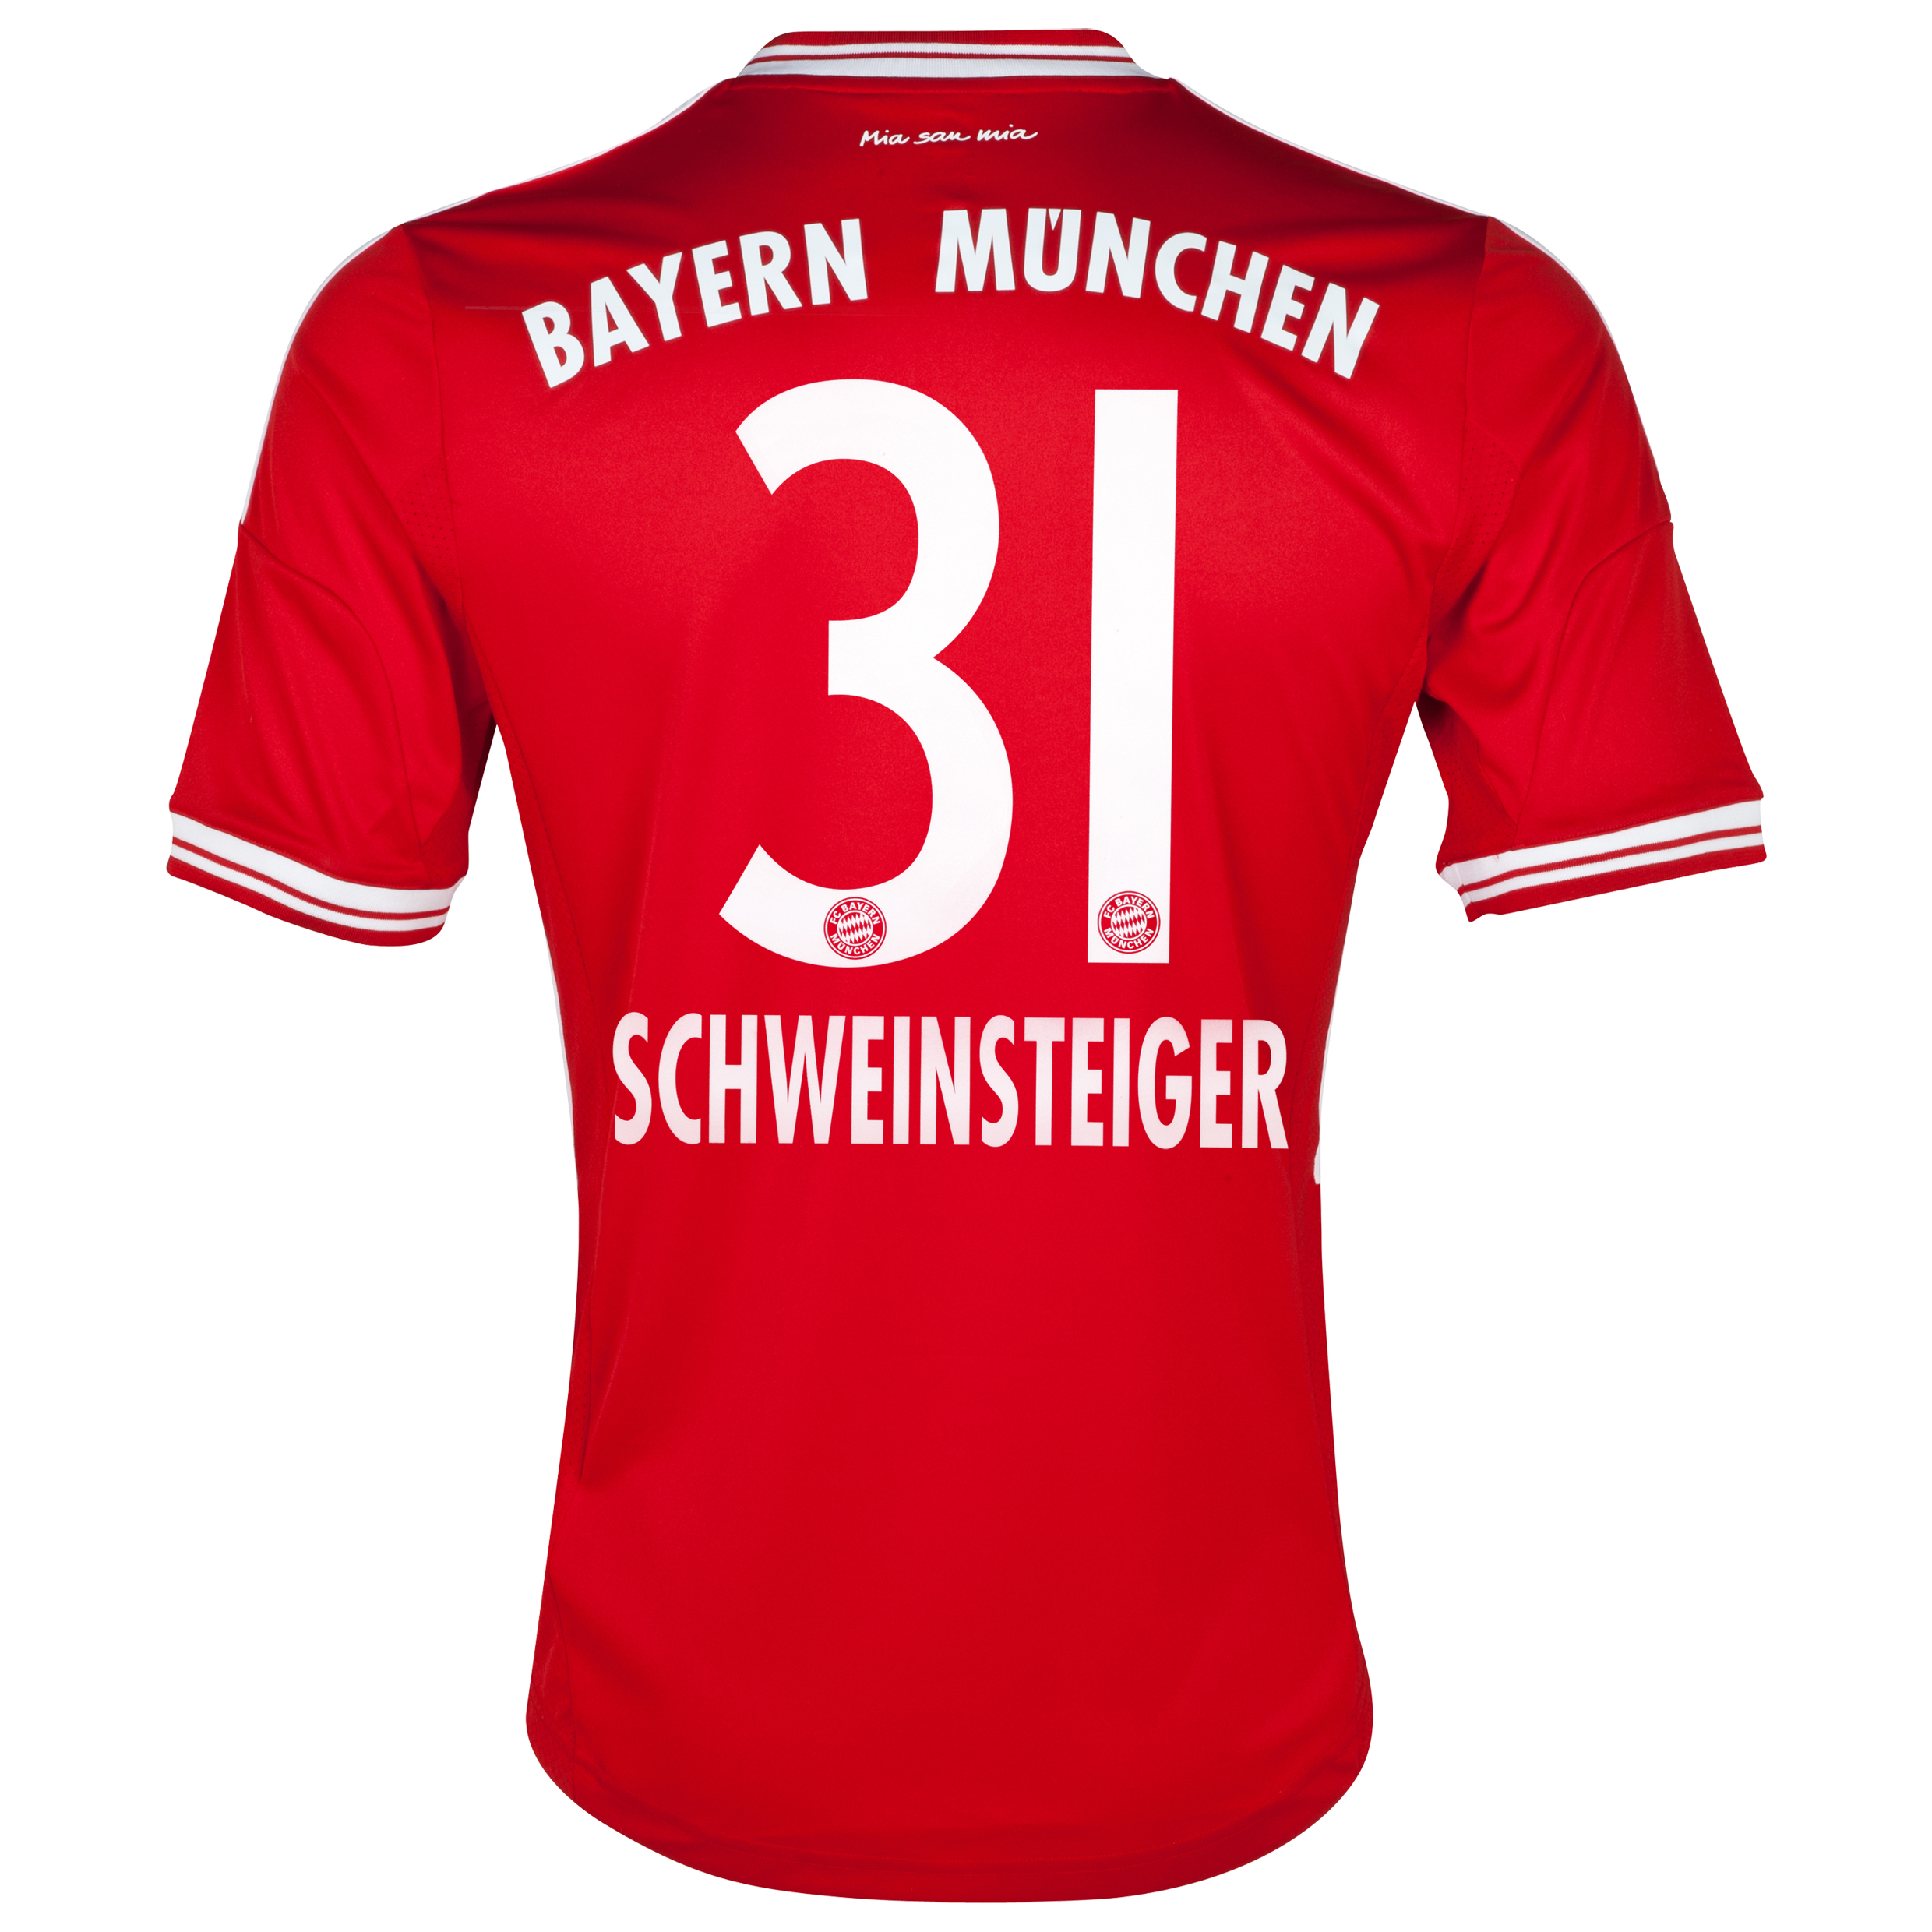 Bayern Munich Home Shirt 2013/14 kids with Schweinsteiger 31 printing